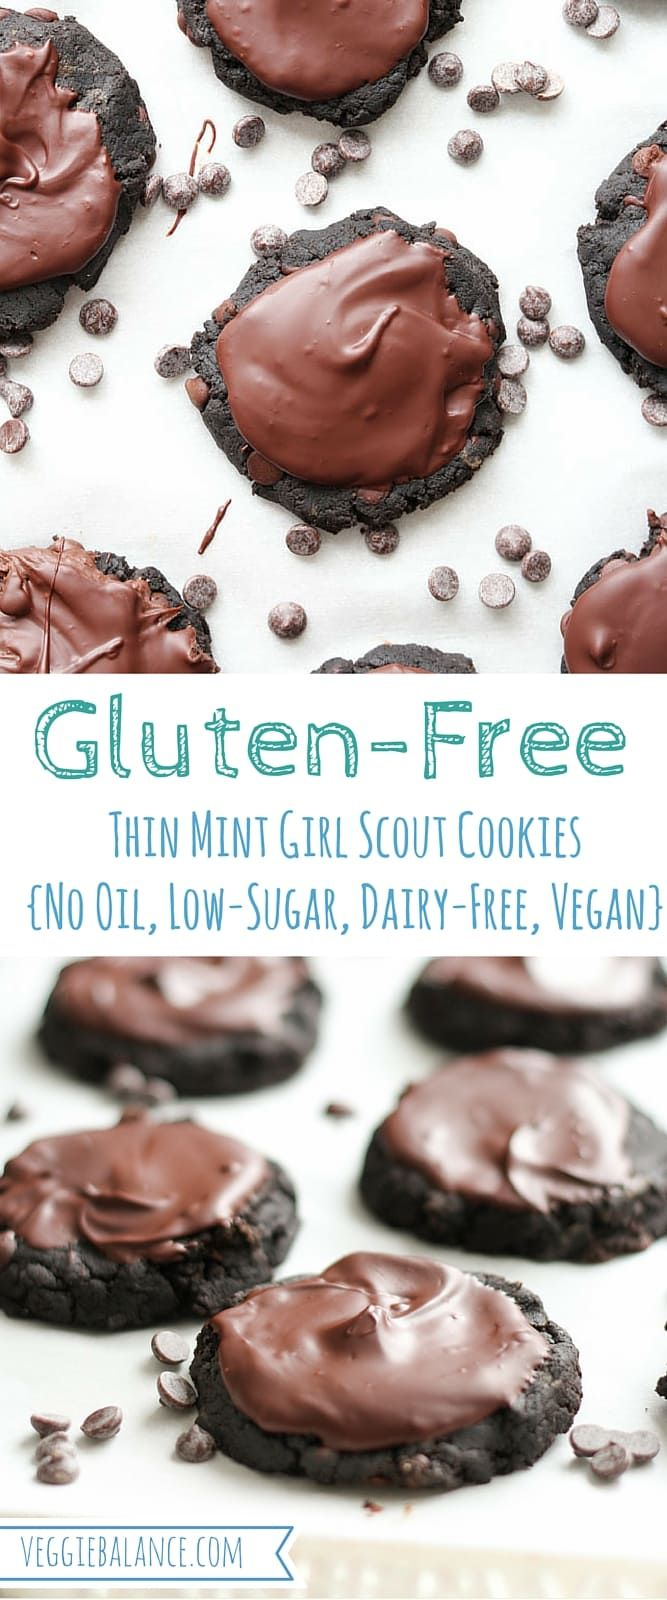 Girl Scout Cookie Recipe Thin Mints Gluten-Free